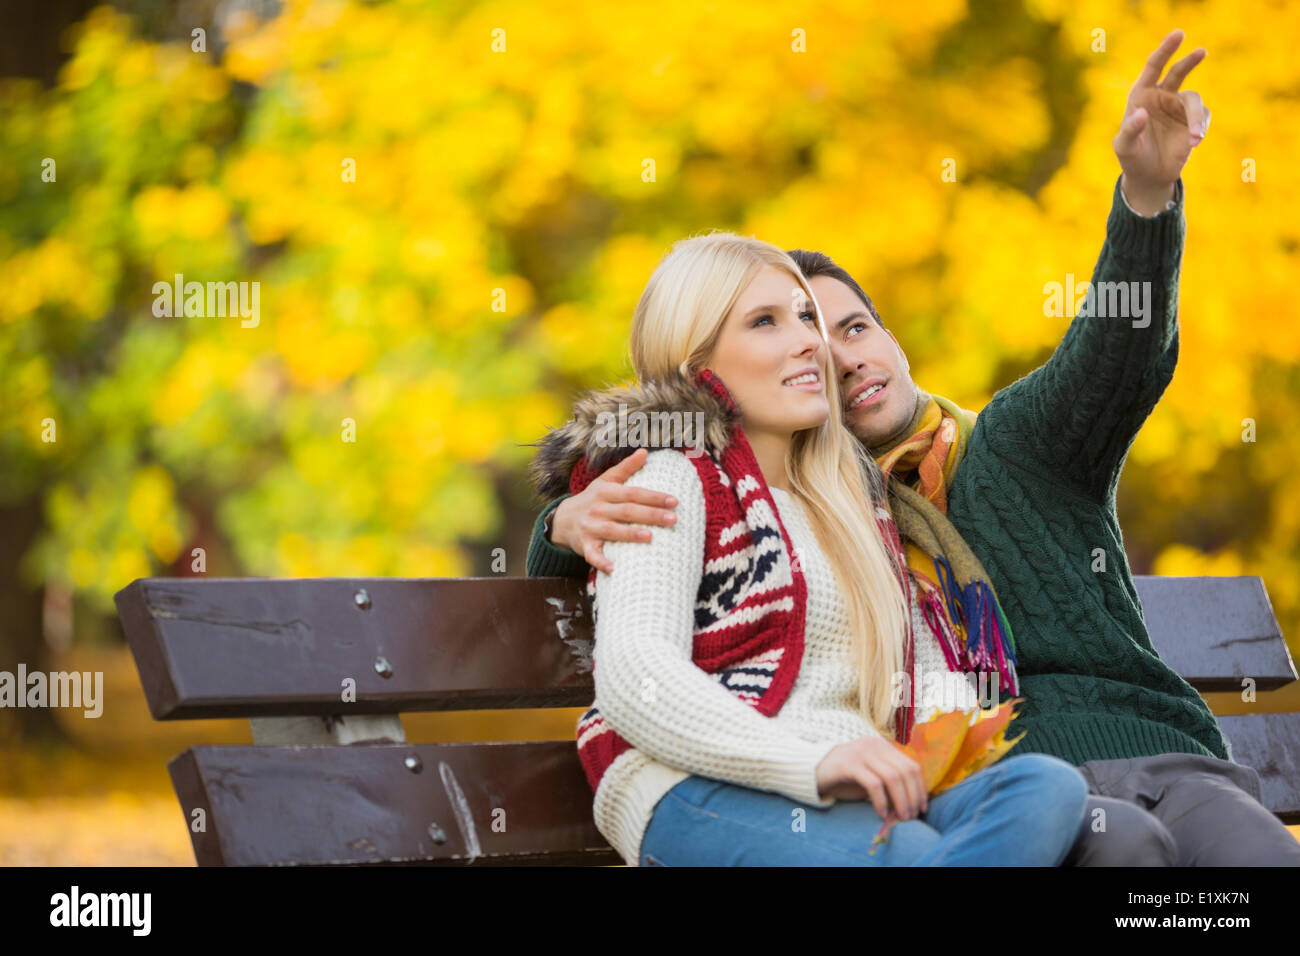 Young man showing something to woman while gesturing in park during autumn - Stock Image